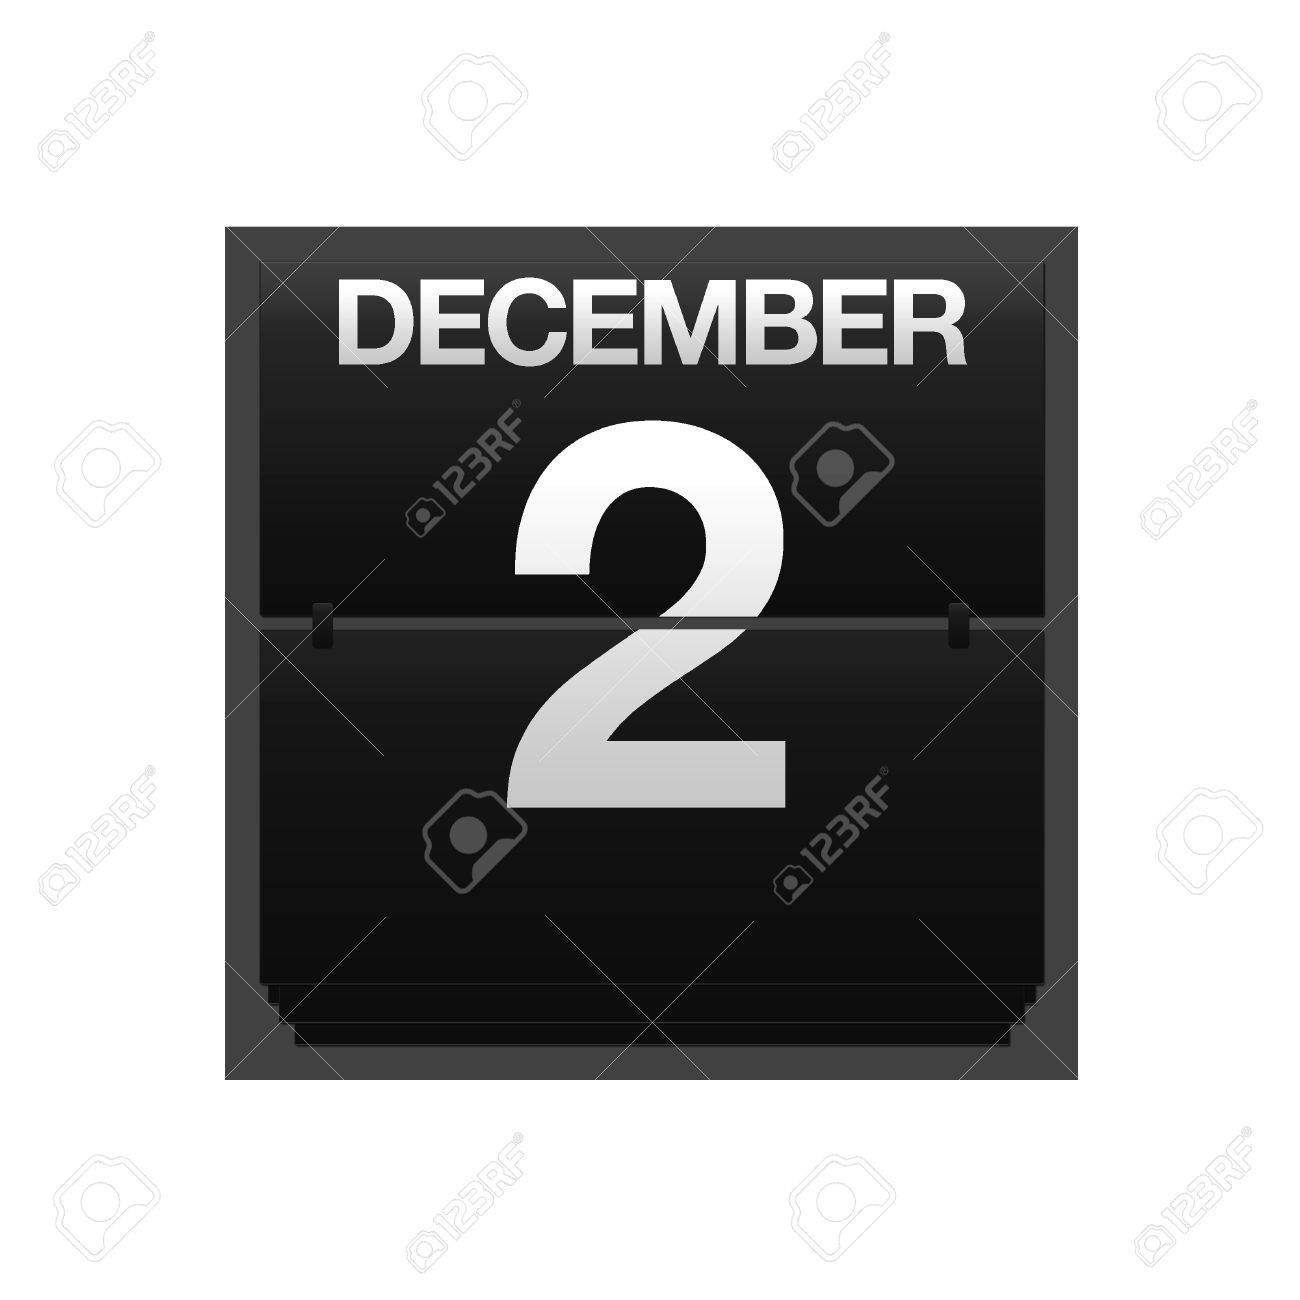 Illustration with a counter calendar december 2 Stock Photo - 15633126